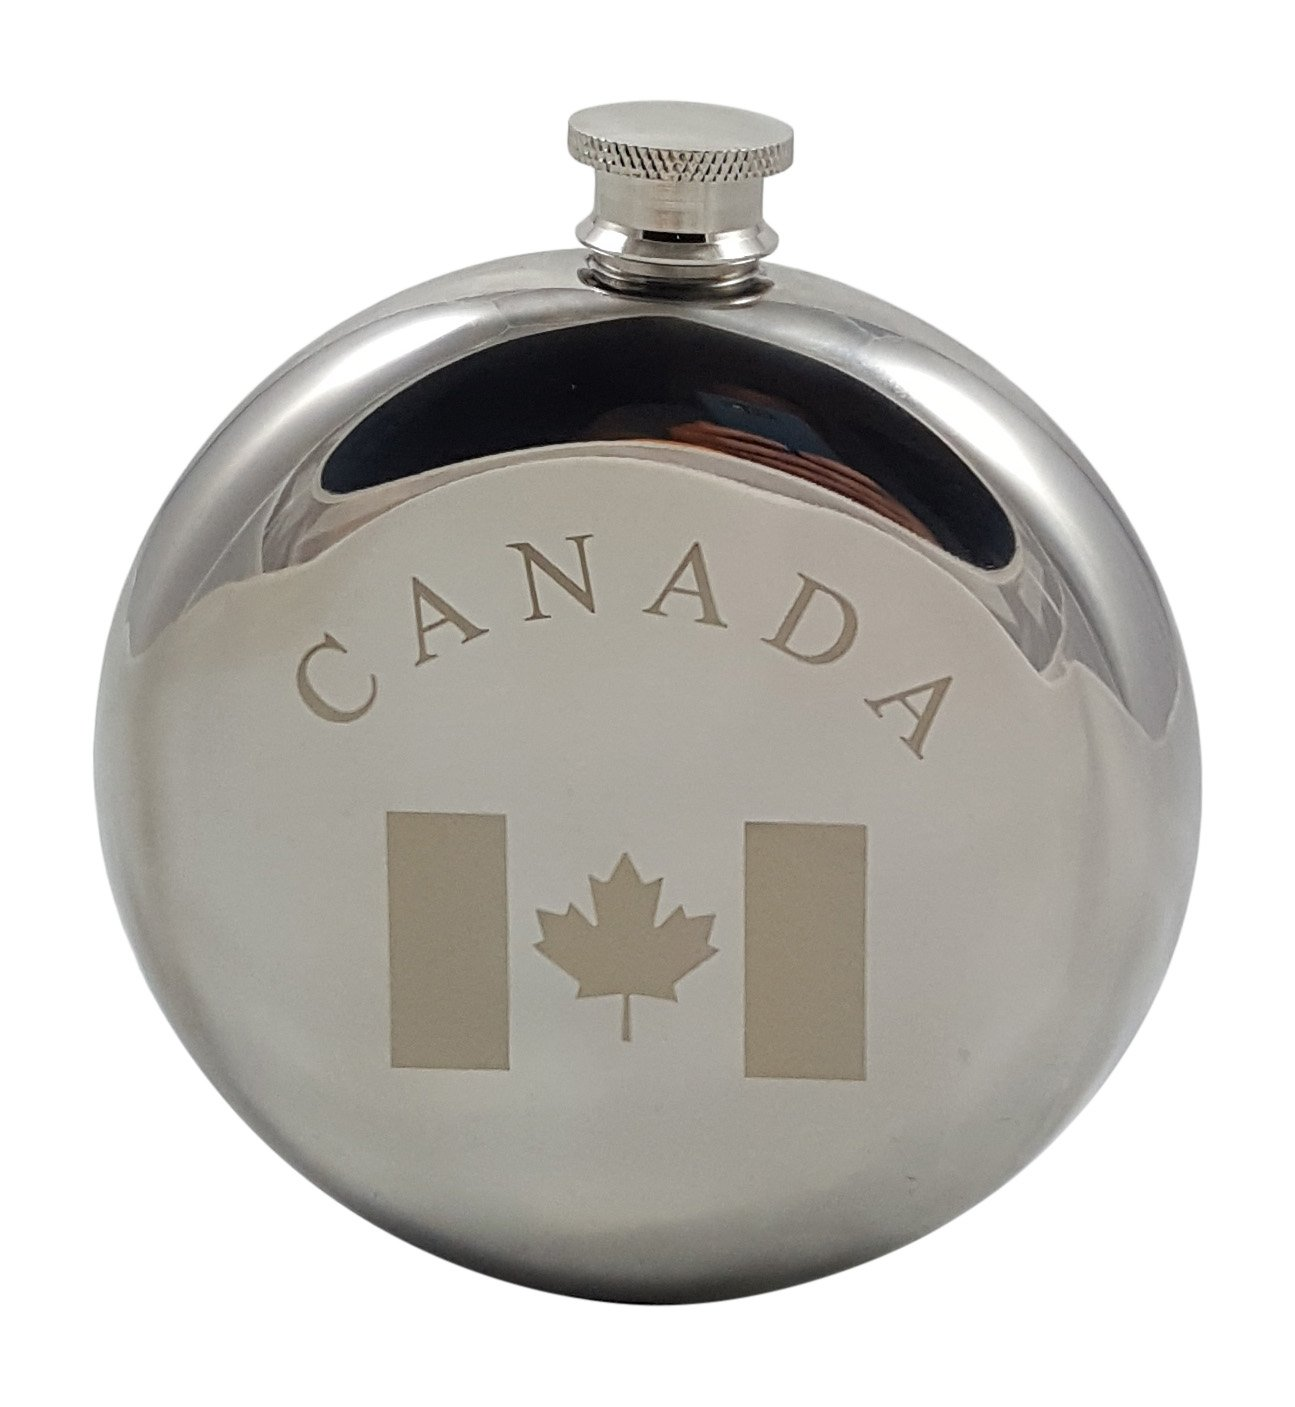 Canada Flask Gift Set by Palm City Products (Image #2)